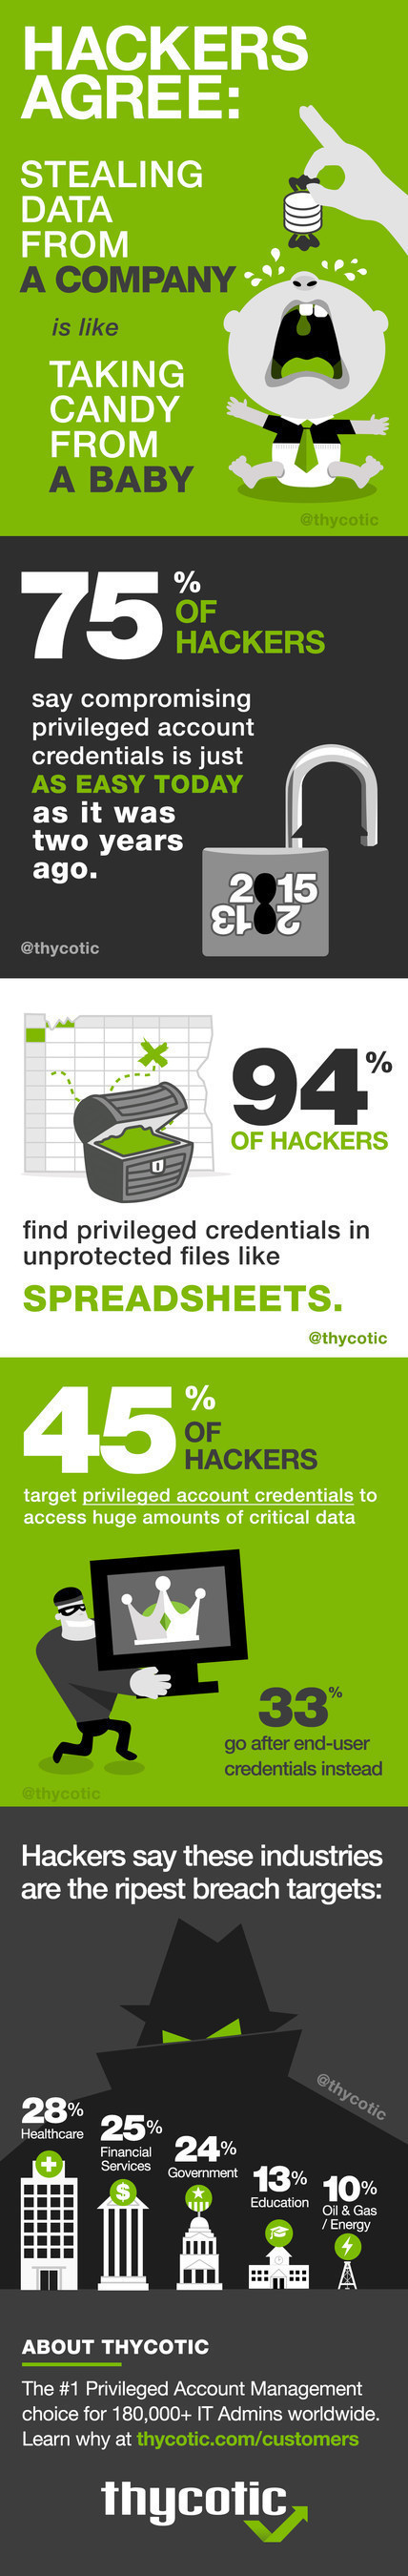 75% of Hackers Say Privileged Accounts Are Just as Easy to Compromise as They Were Two Years Ago